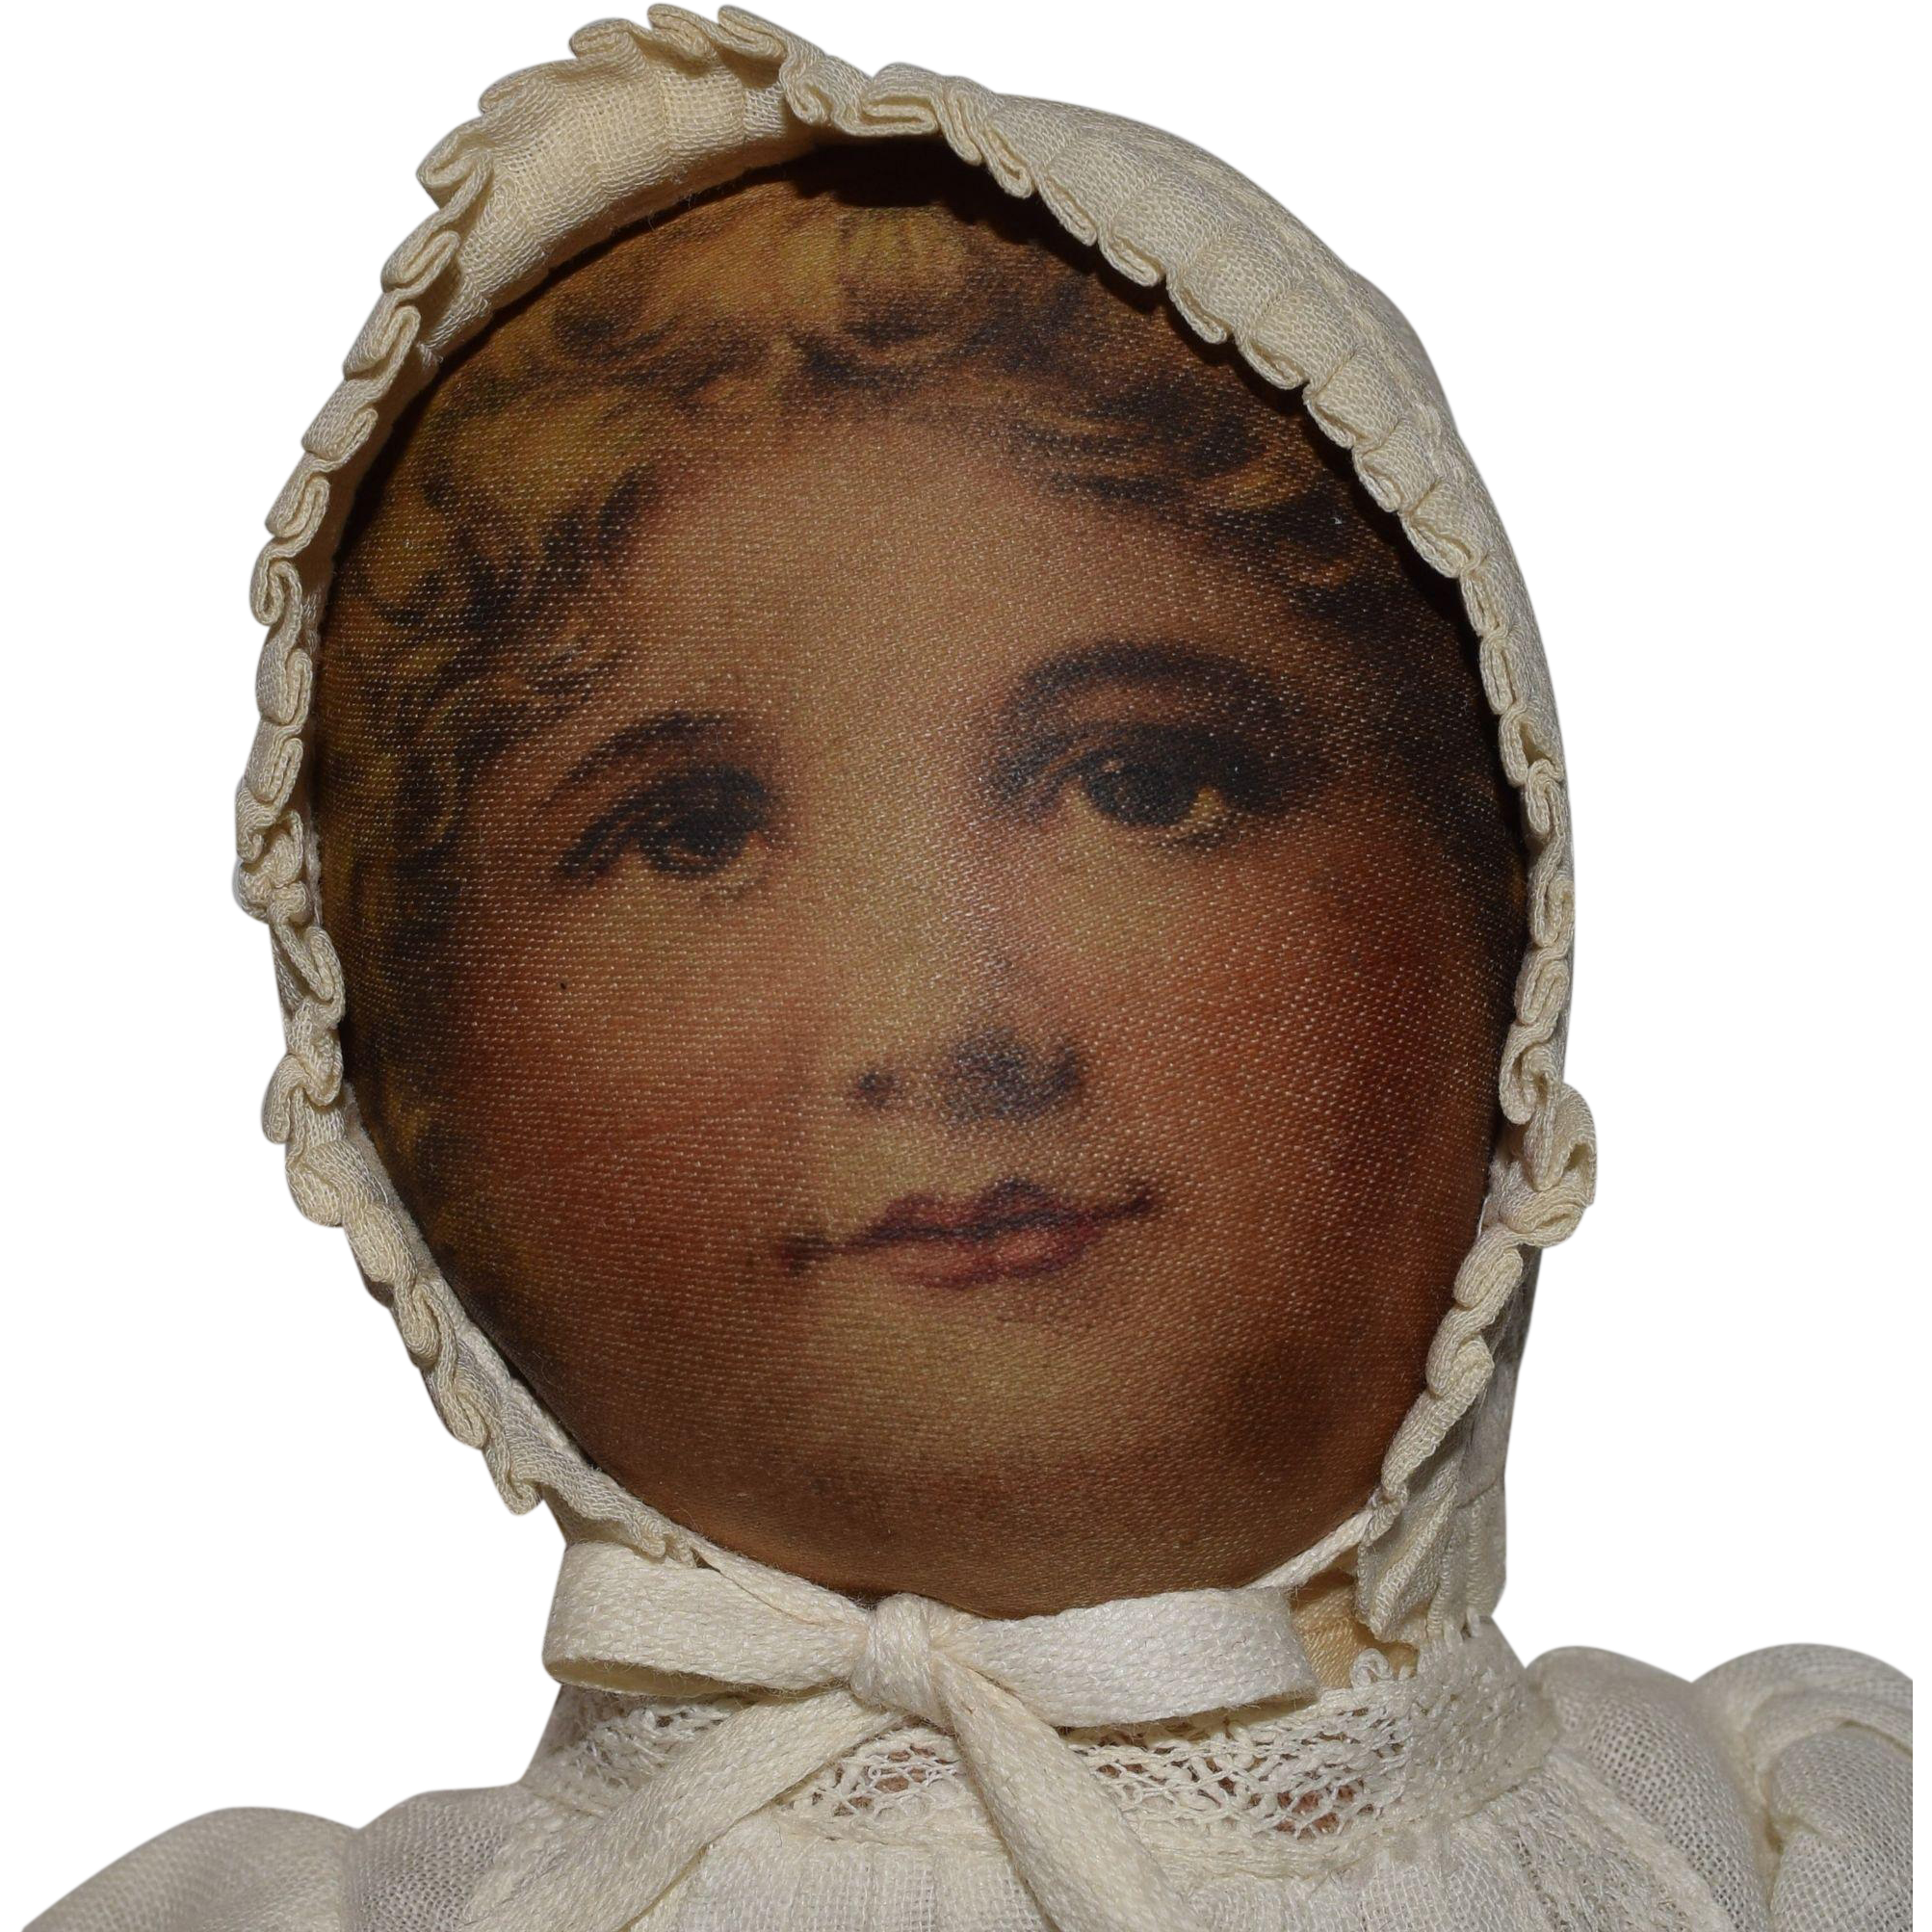 Babyland Rag Cloth Doll with Lithographed Face